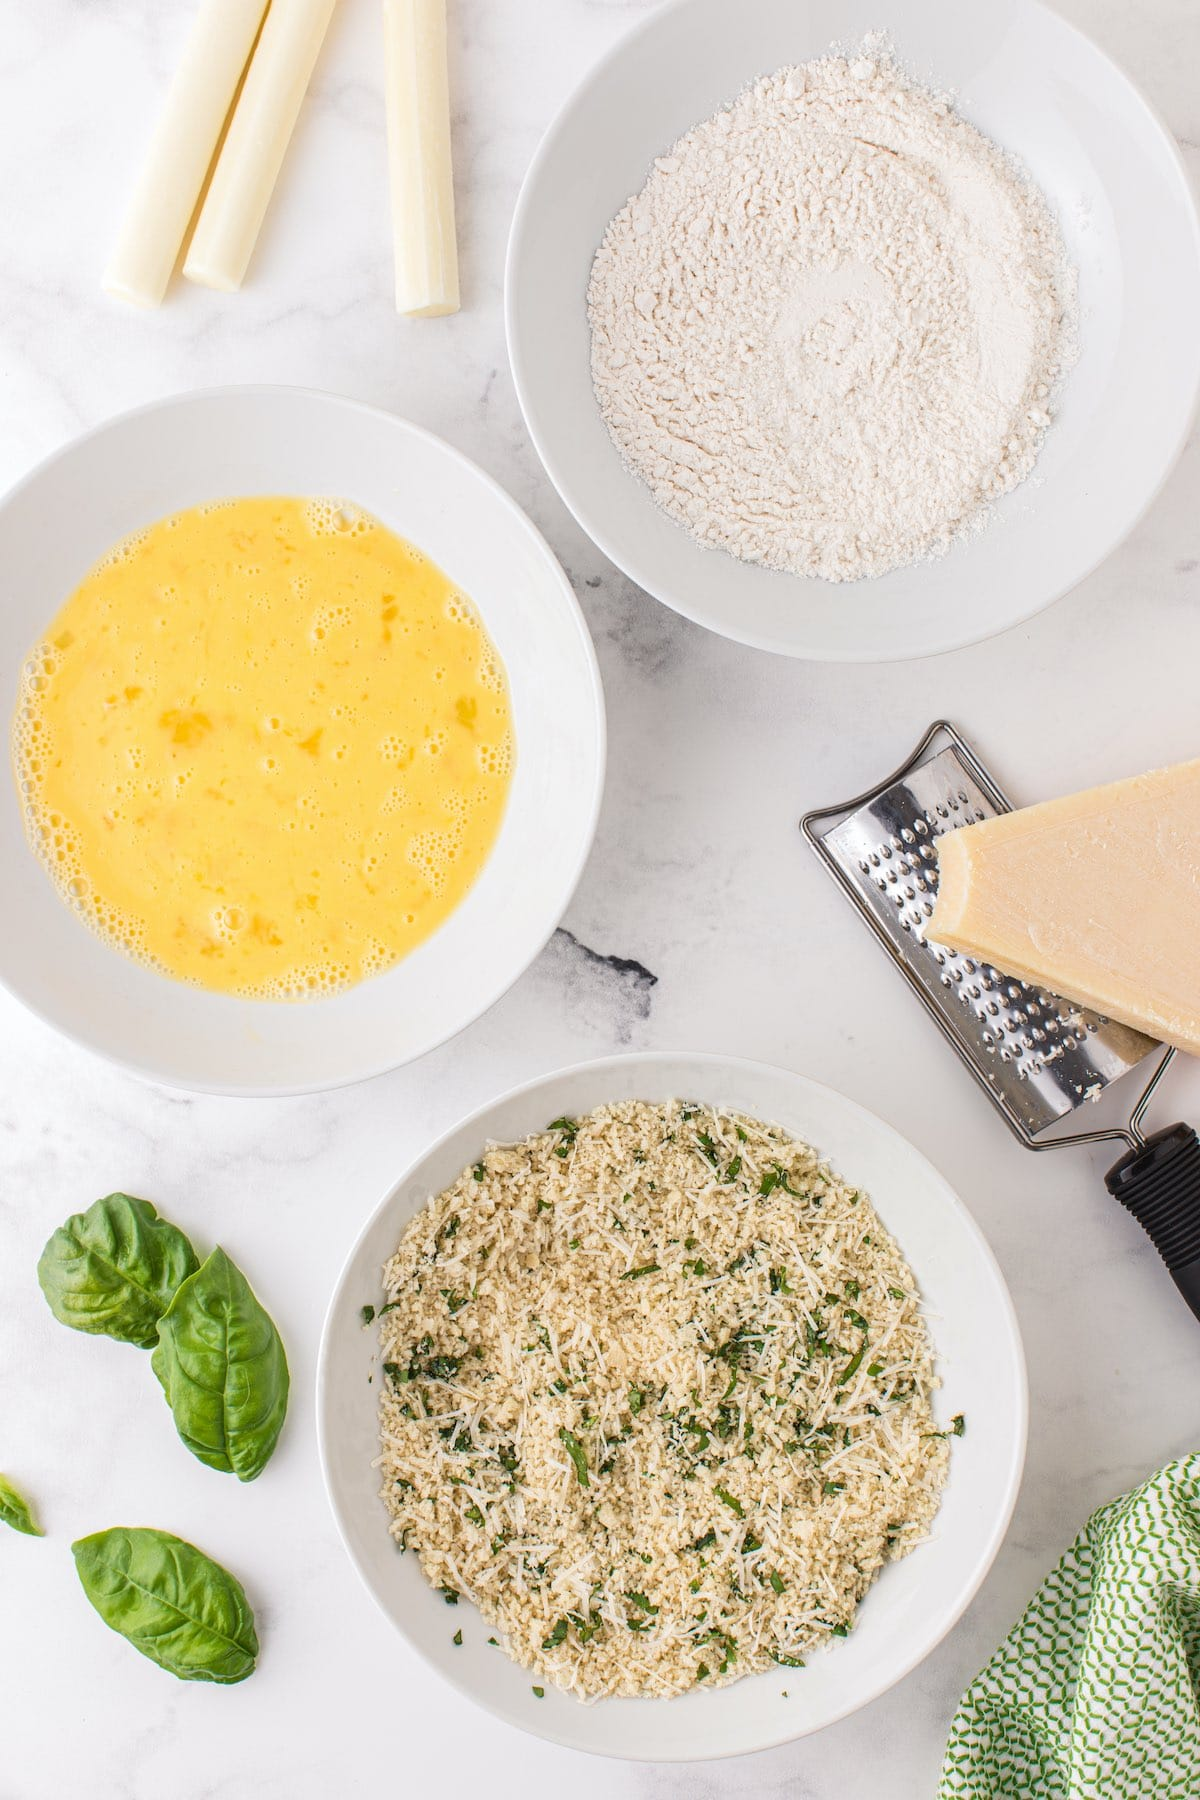 3 separate bowl with bread crumbs mixture, flour mixture and eggs